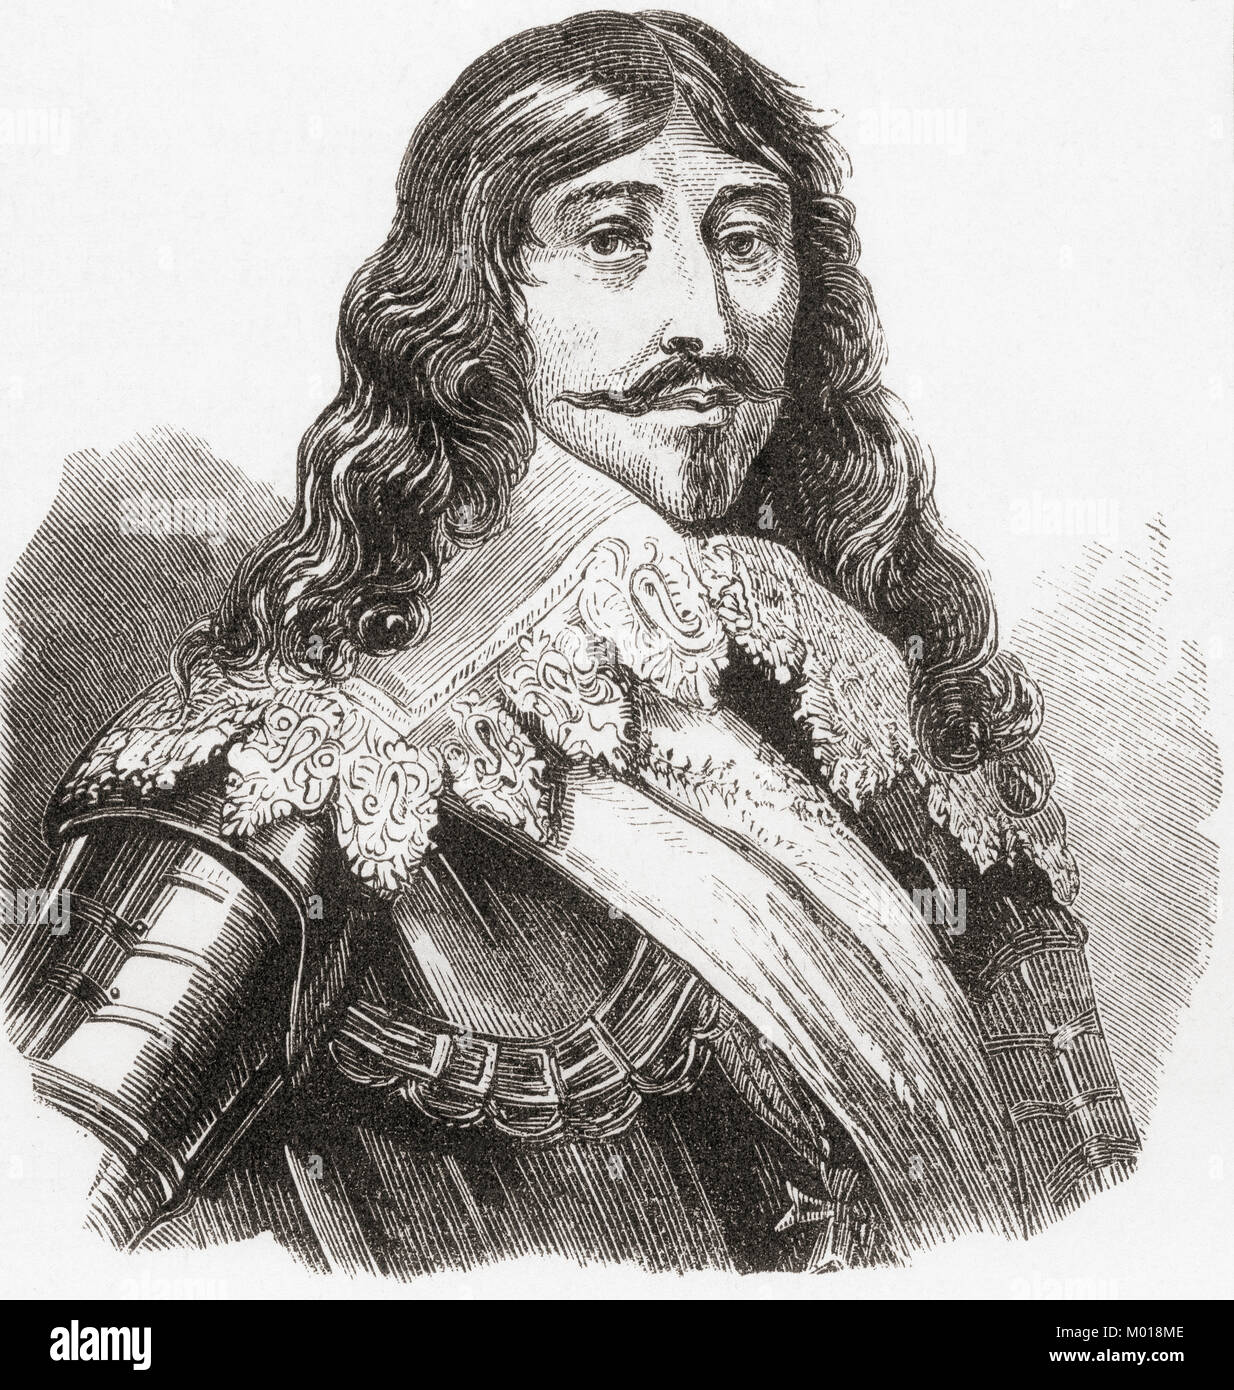 Louis XIII, 1601 – 1643.   King of France from 1610 to 1643 and King of Navarre (as Louis II) from 1610 to 1620. Stock Photo